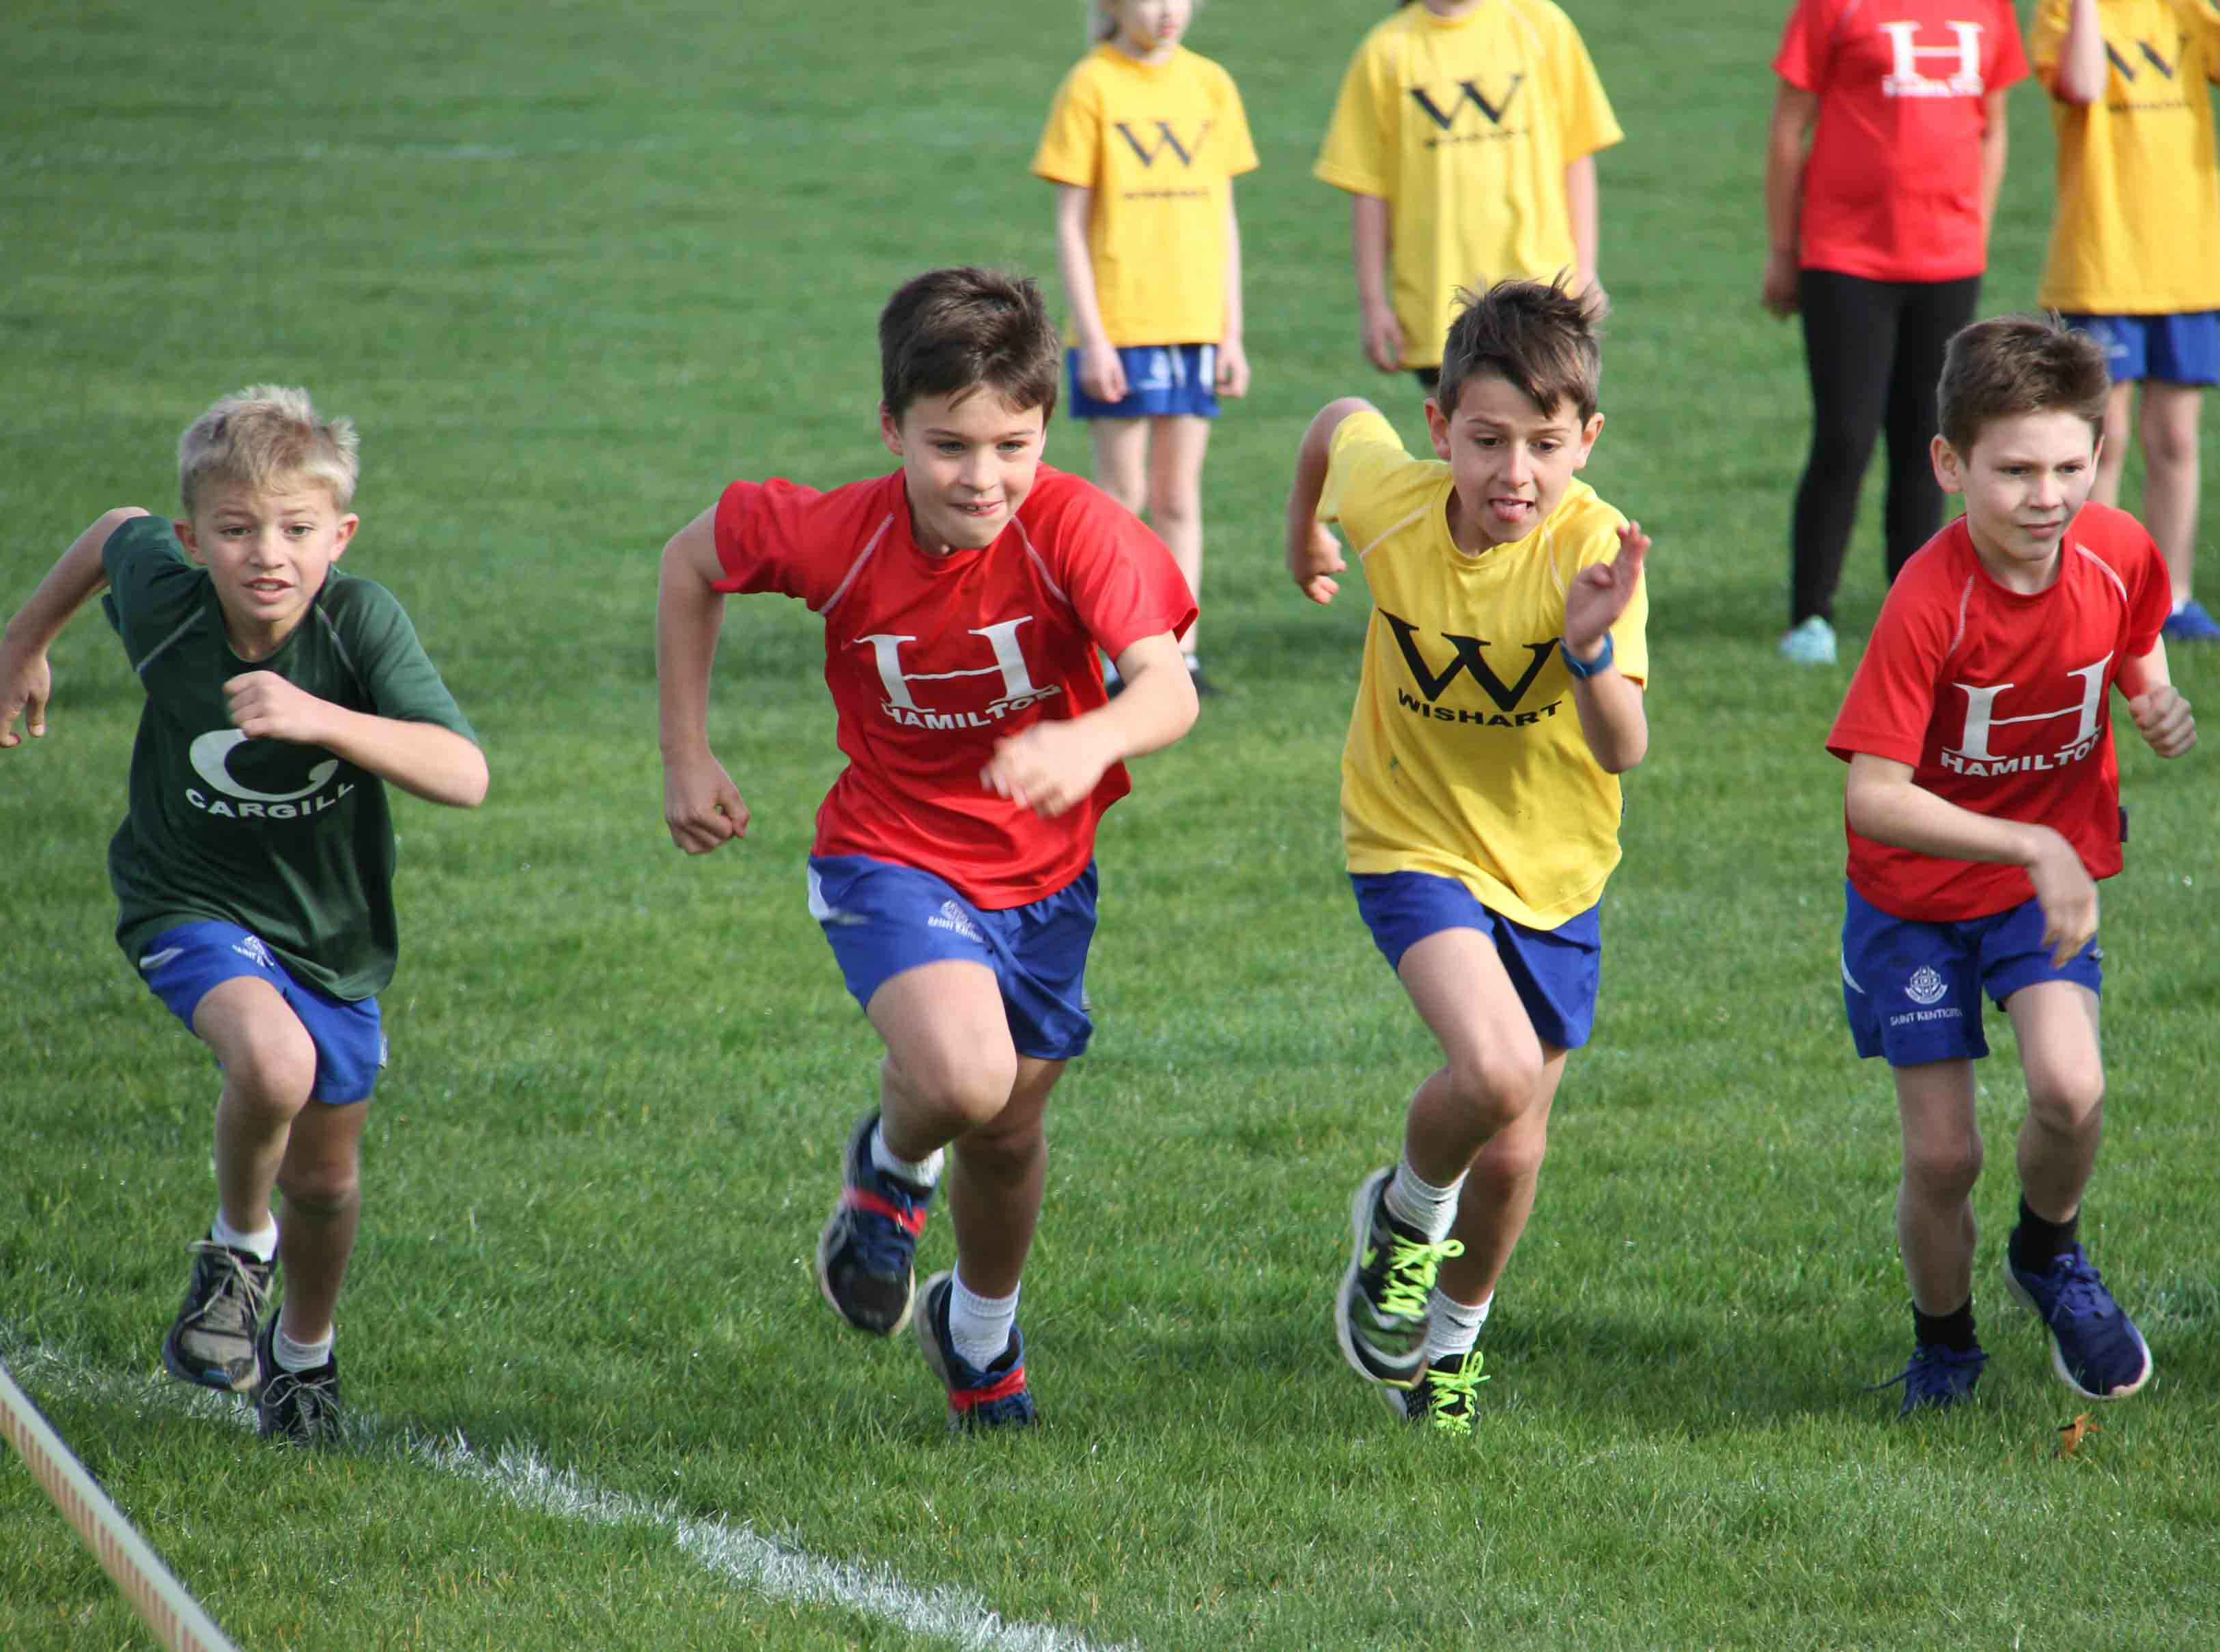 Saint-Kentigern-Boys'-Schoo-Sport-Cross-Country.jpg